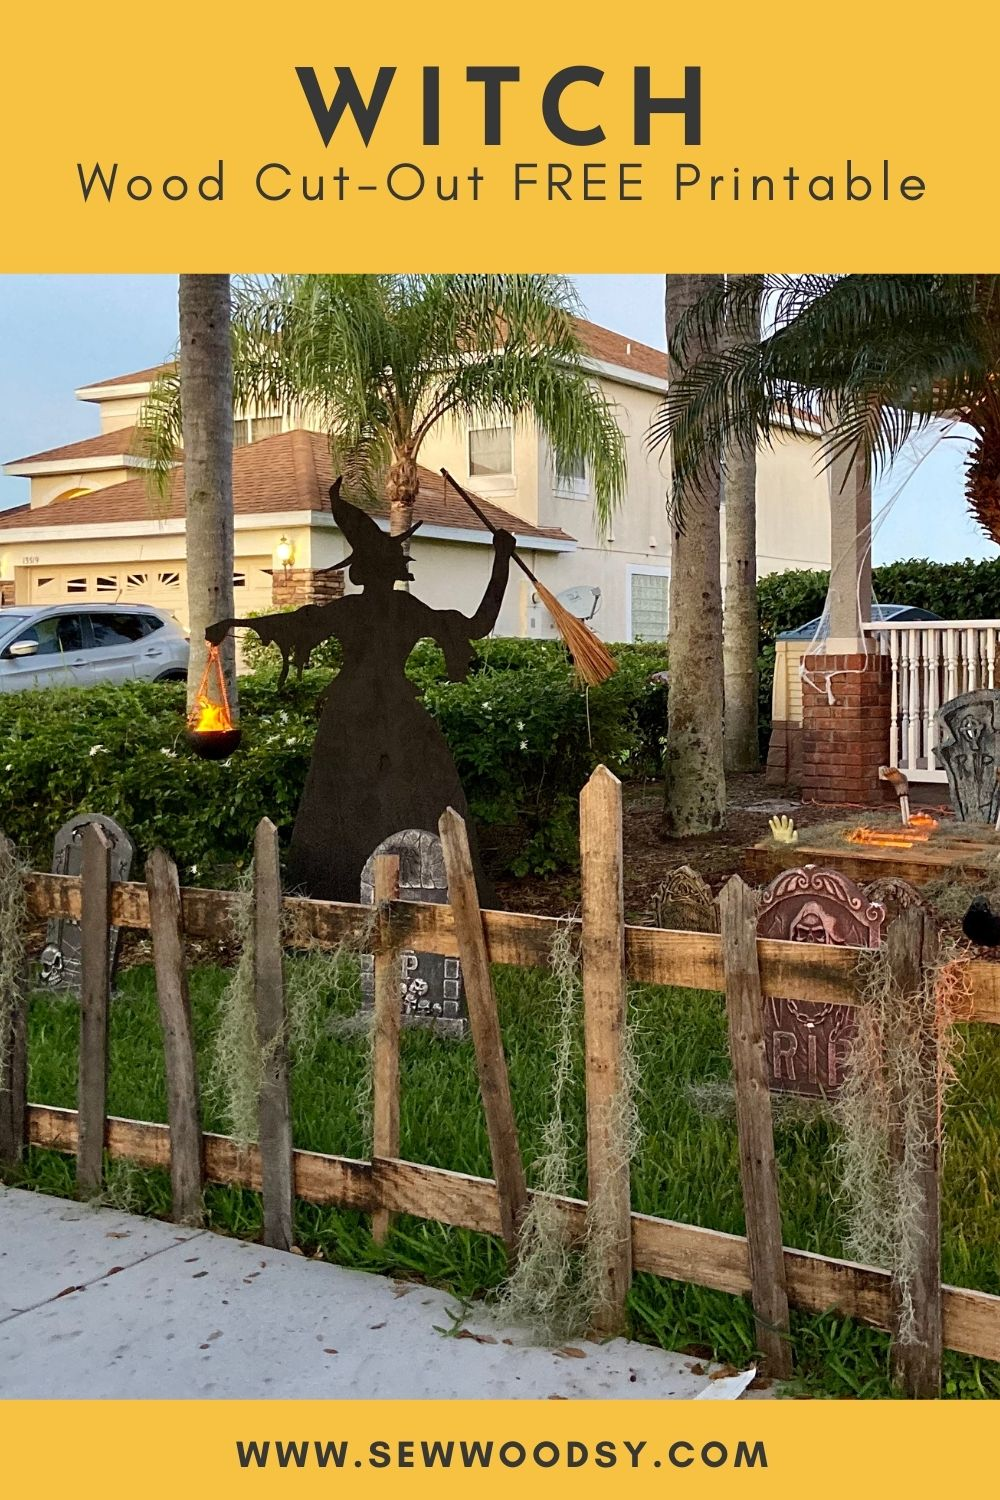 Wood pickett fence with a black silhouette witch in the background.